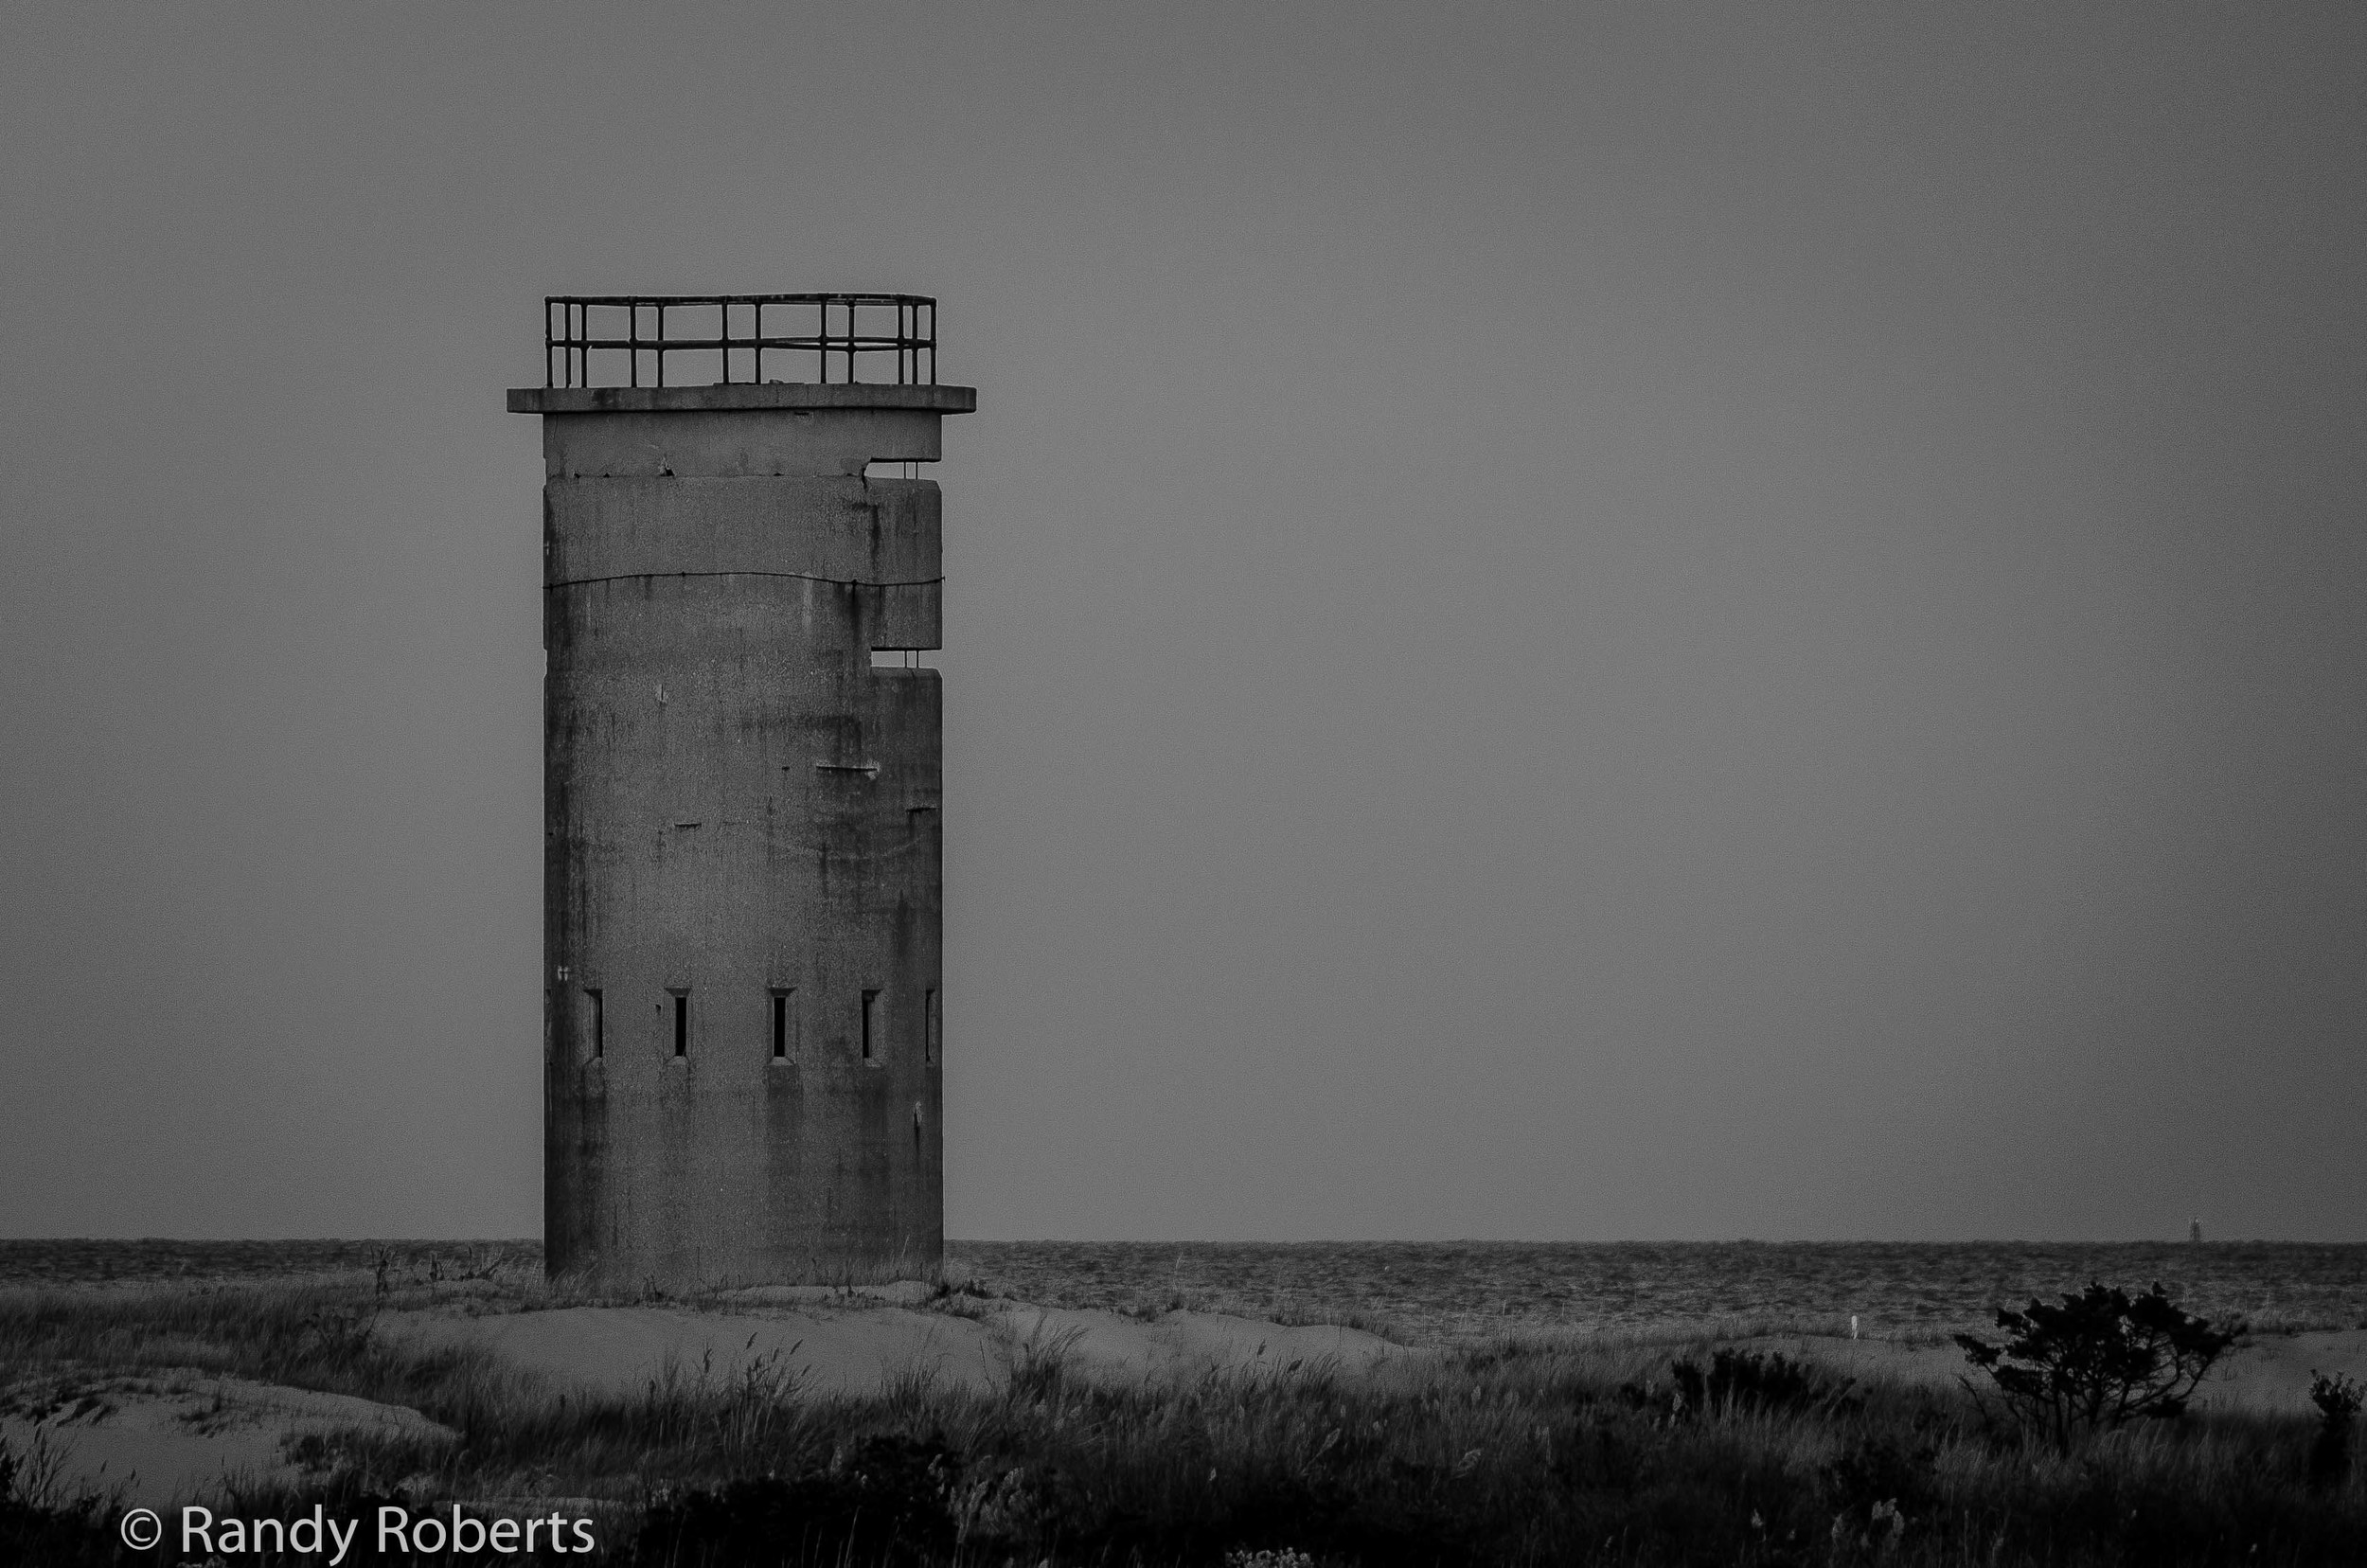 Cape Henlopen WWII Tower